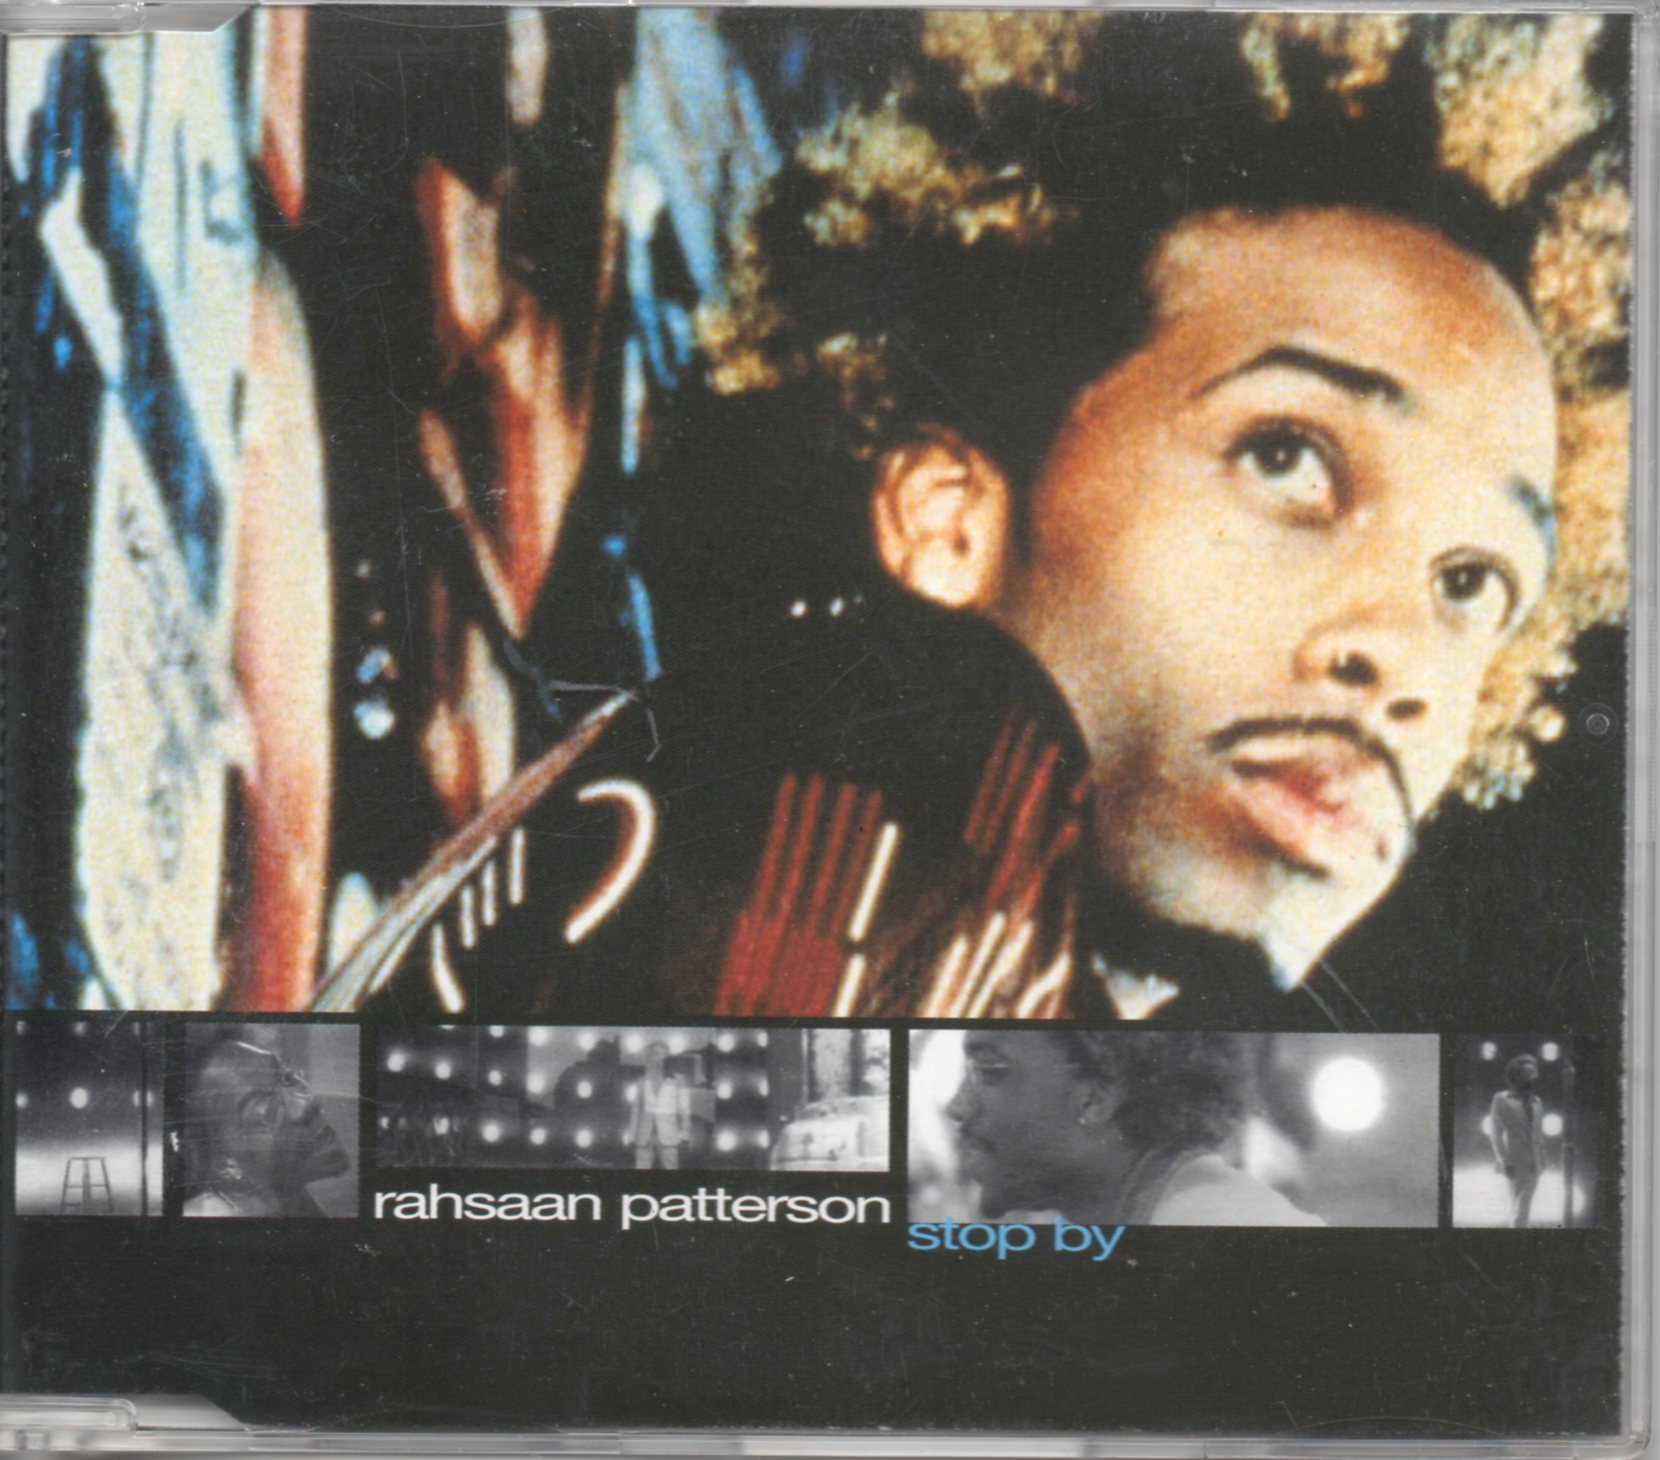 RAHSAAN PATTERSON - Stop by 4-track Jewel Case - CD Maxi